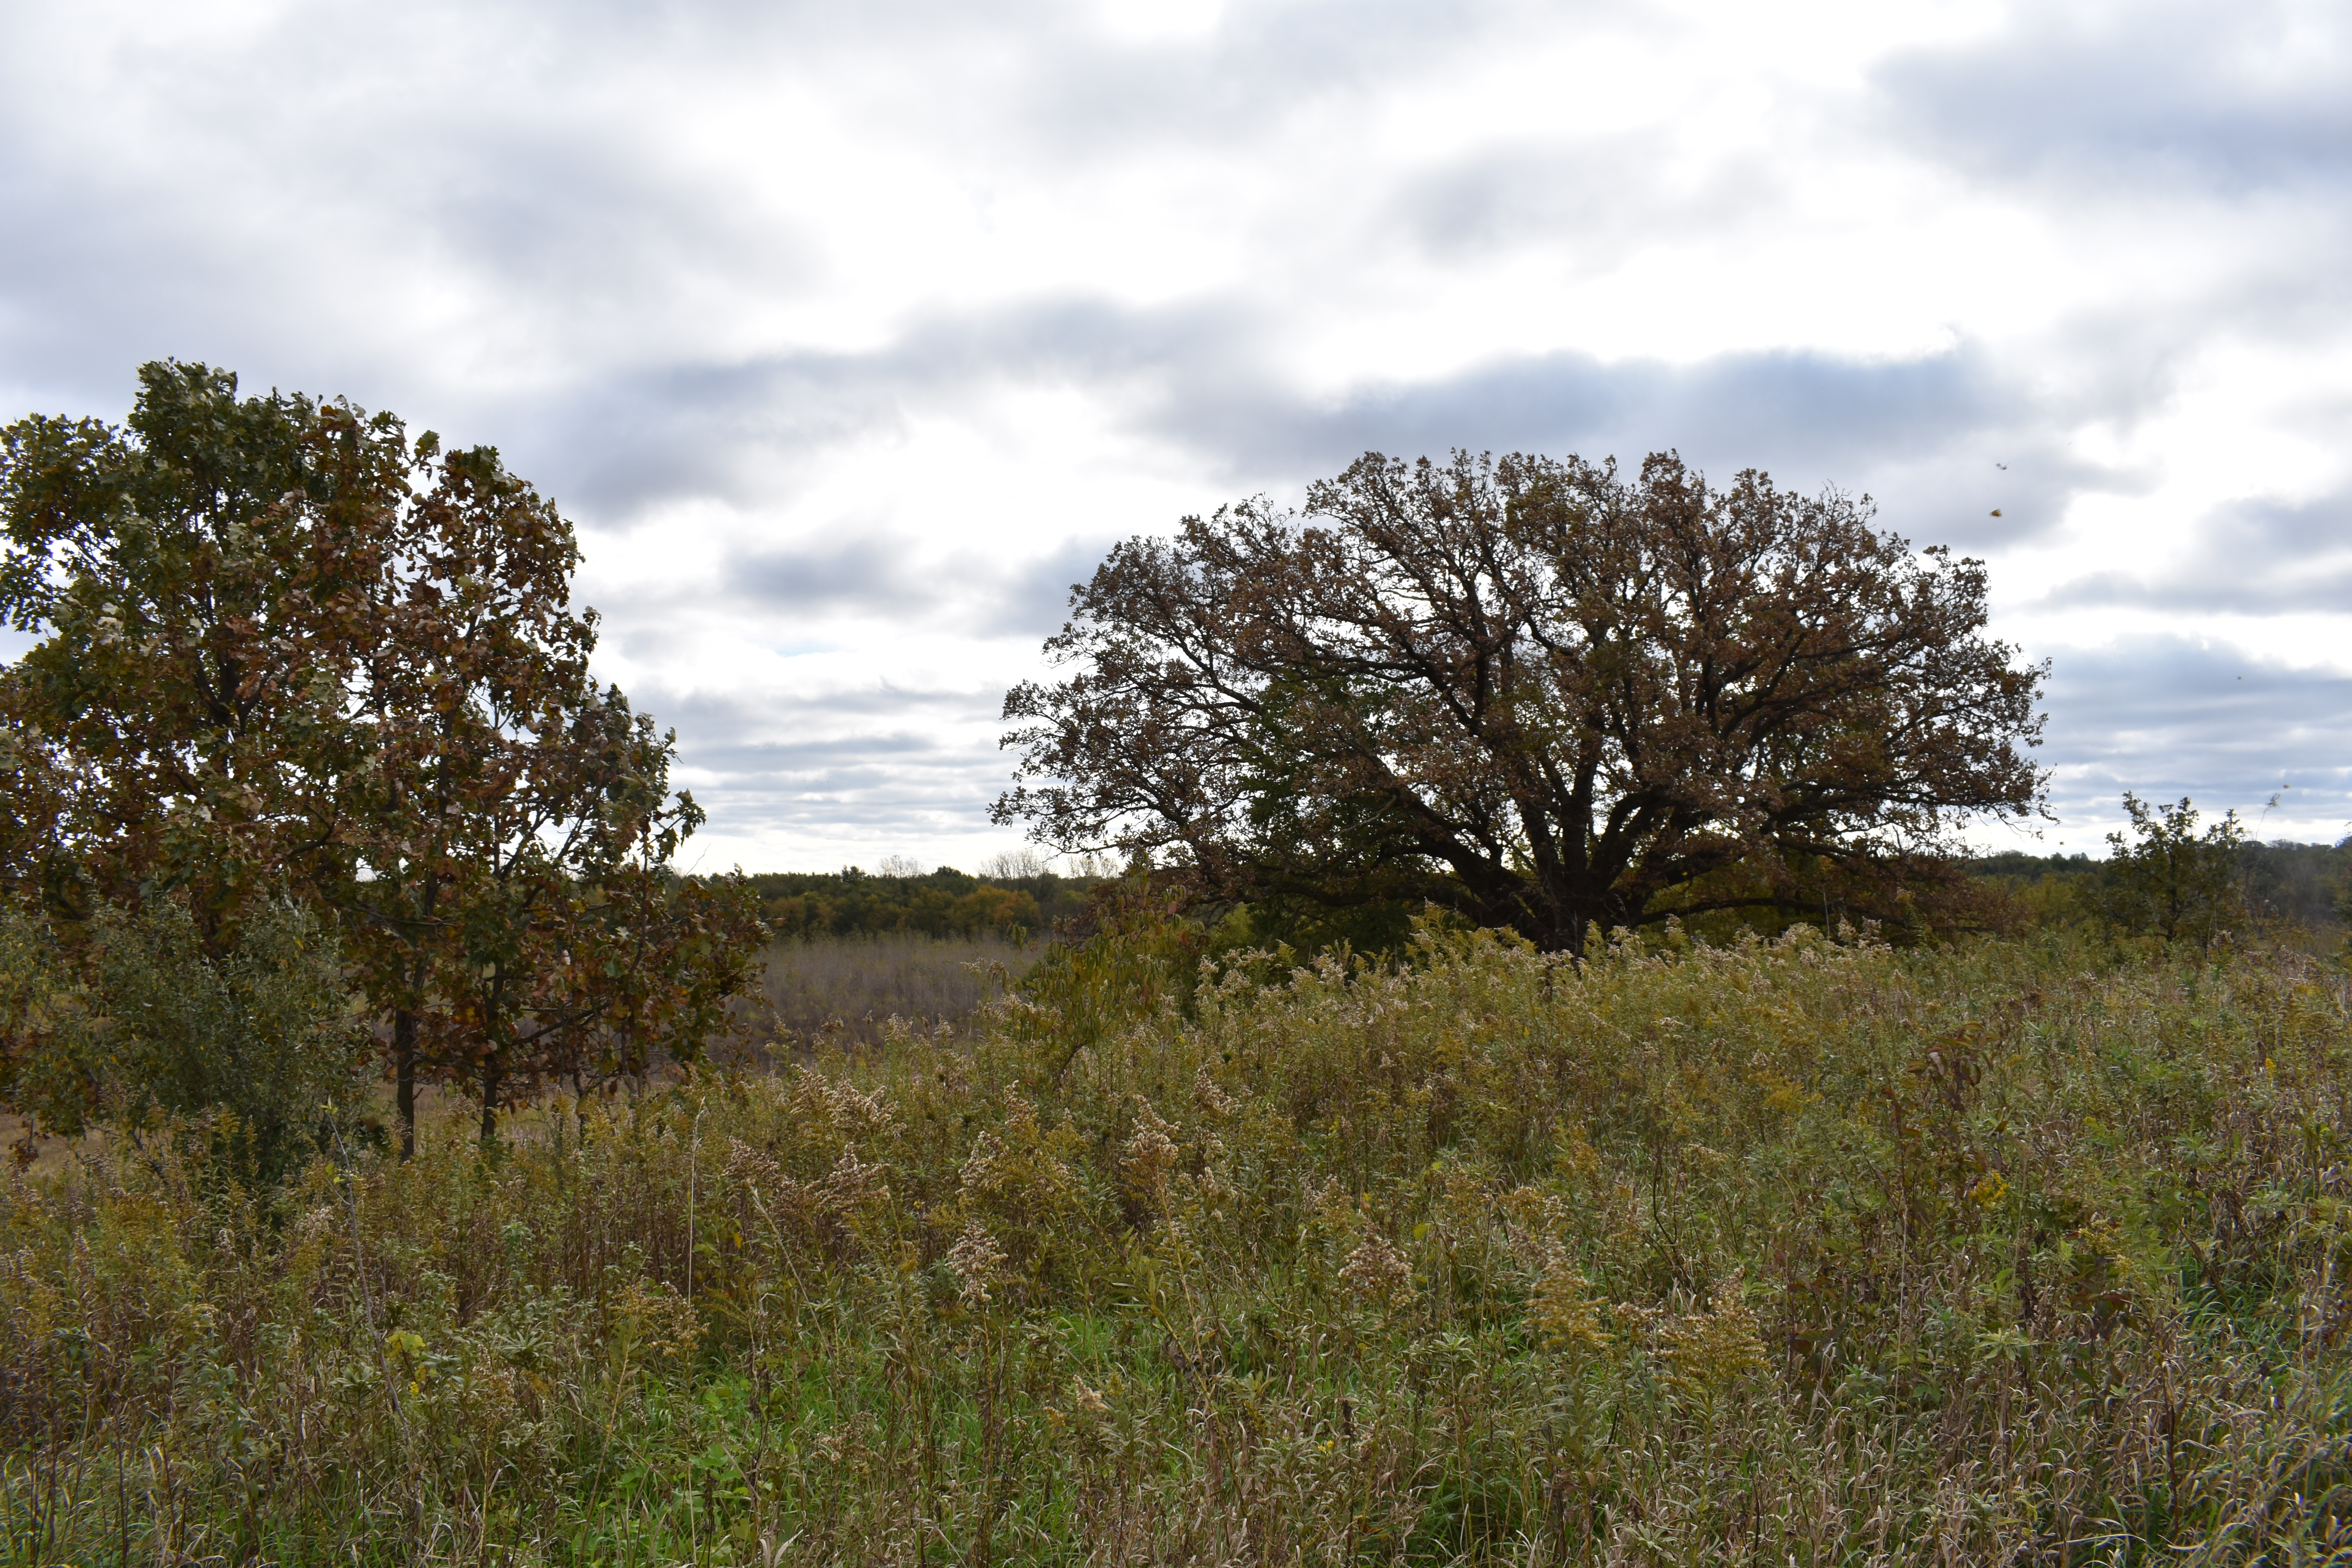 Fall Colors in the Wetland? – 99Wetlands